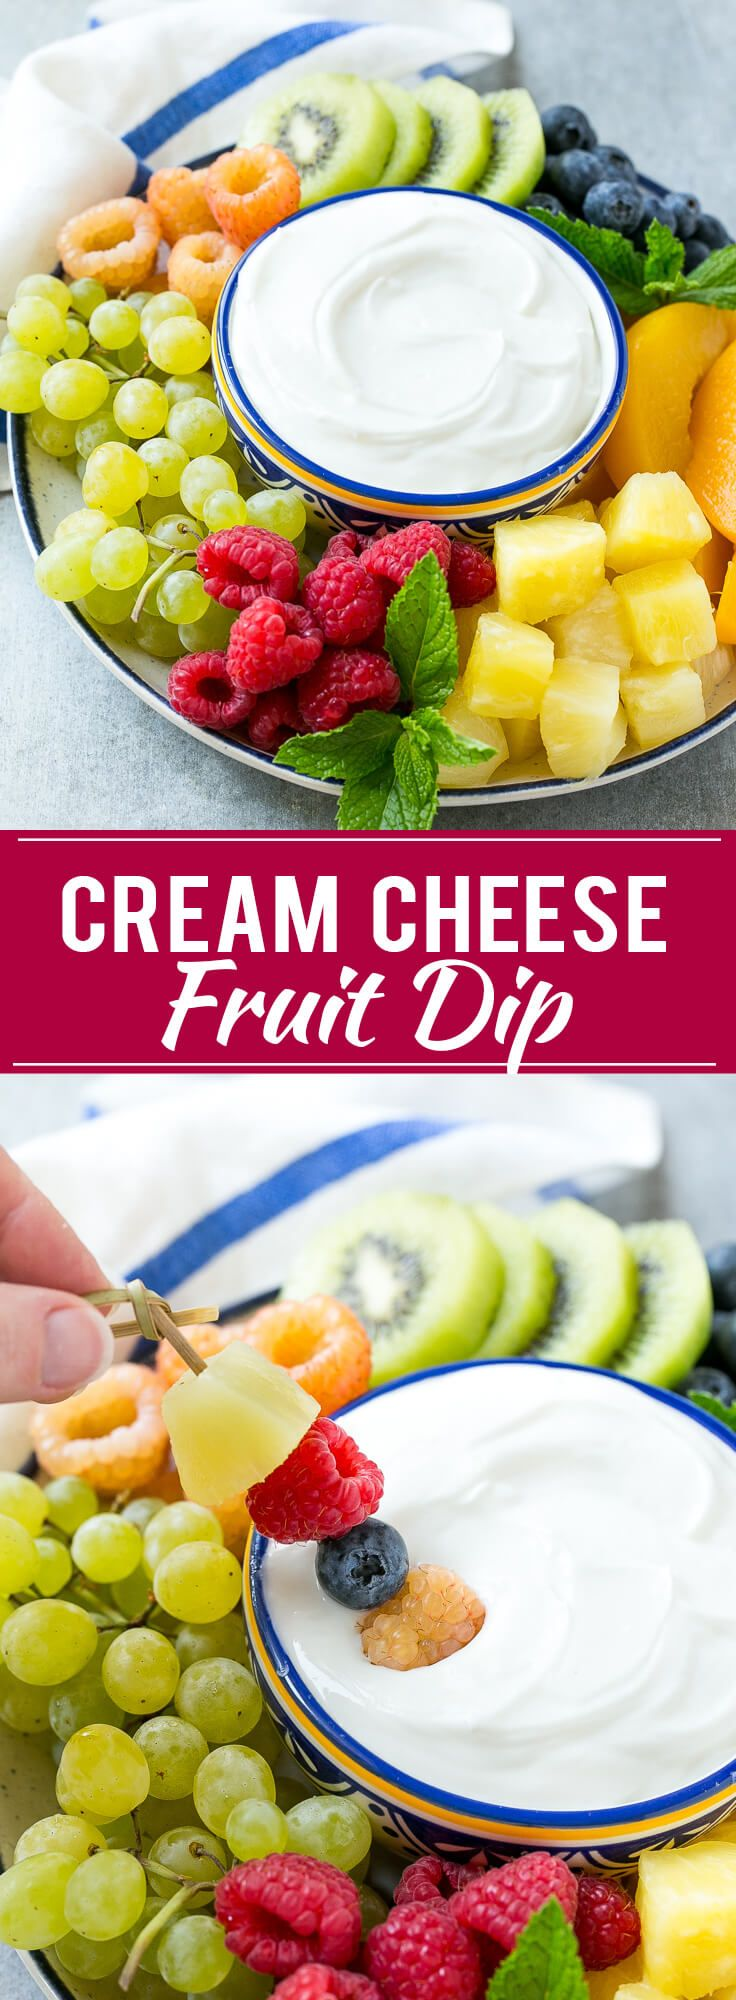 Cream Cheese Fruit Dip | Fruit Recipe | Fruit Dip | Healthy Snack Recipe